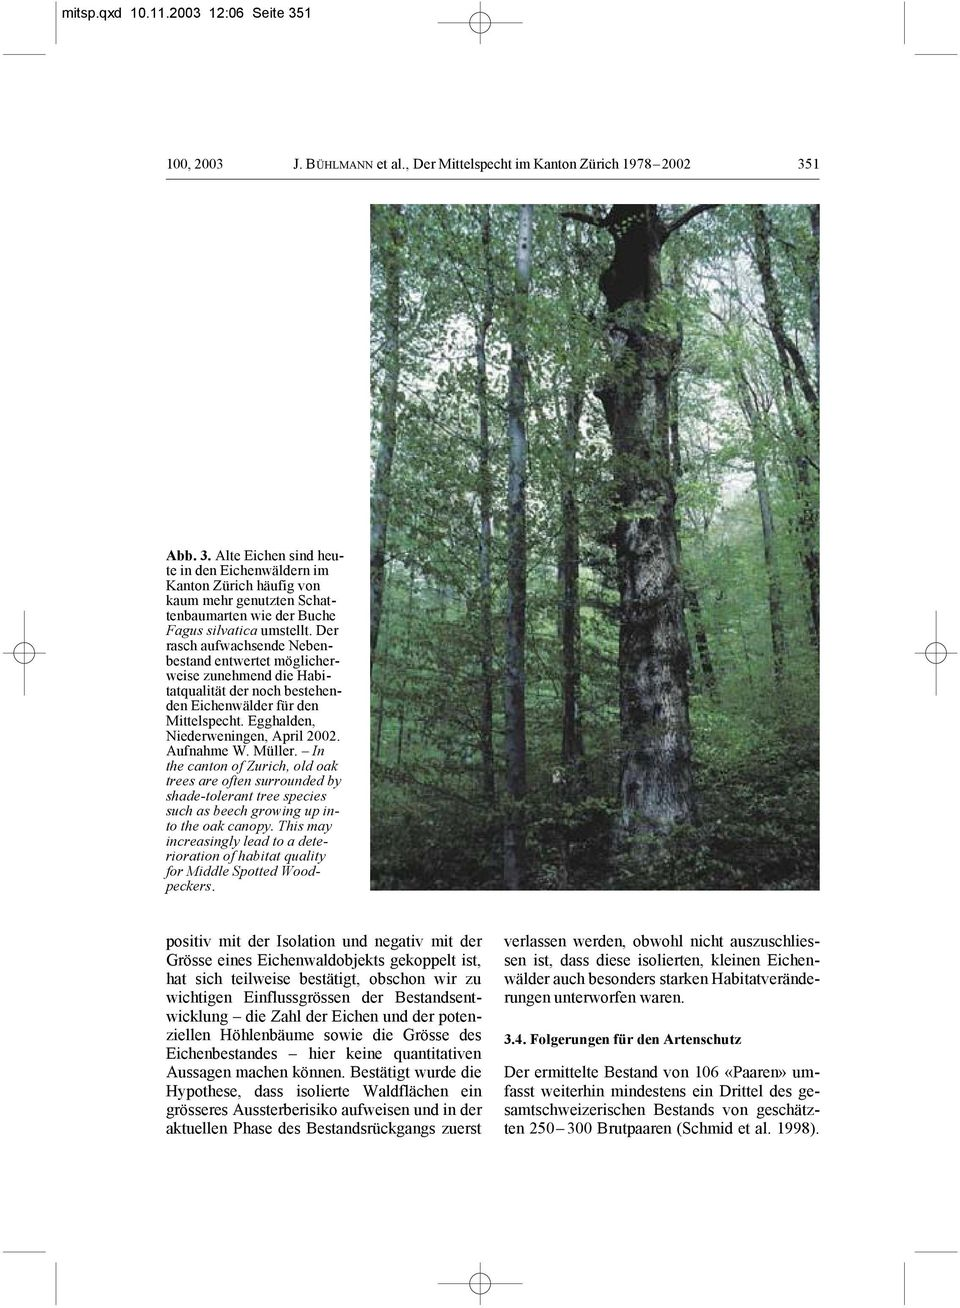 Müller. In the canton of Zurich, old oak trees are often surrounded by shade-tolerant tree species such as beech growing up into the oak canopy.